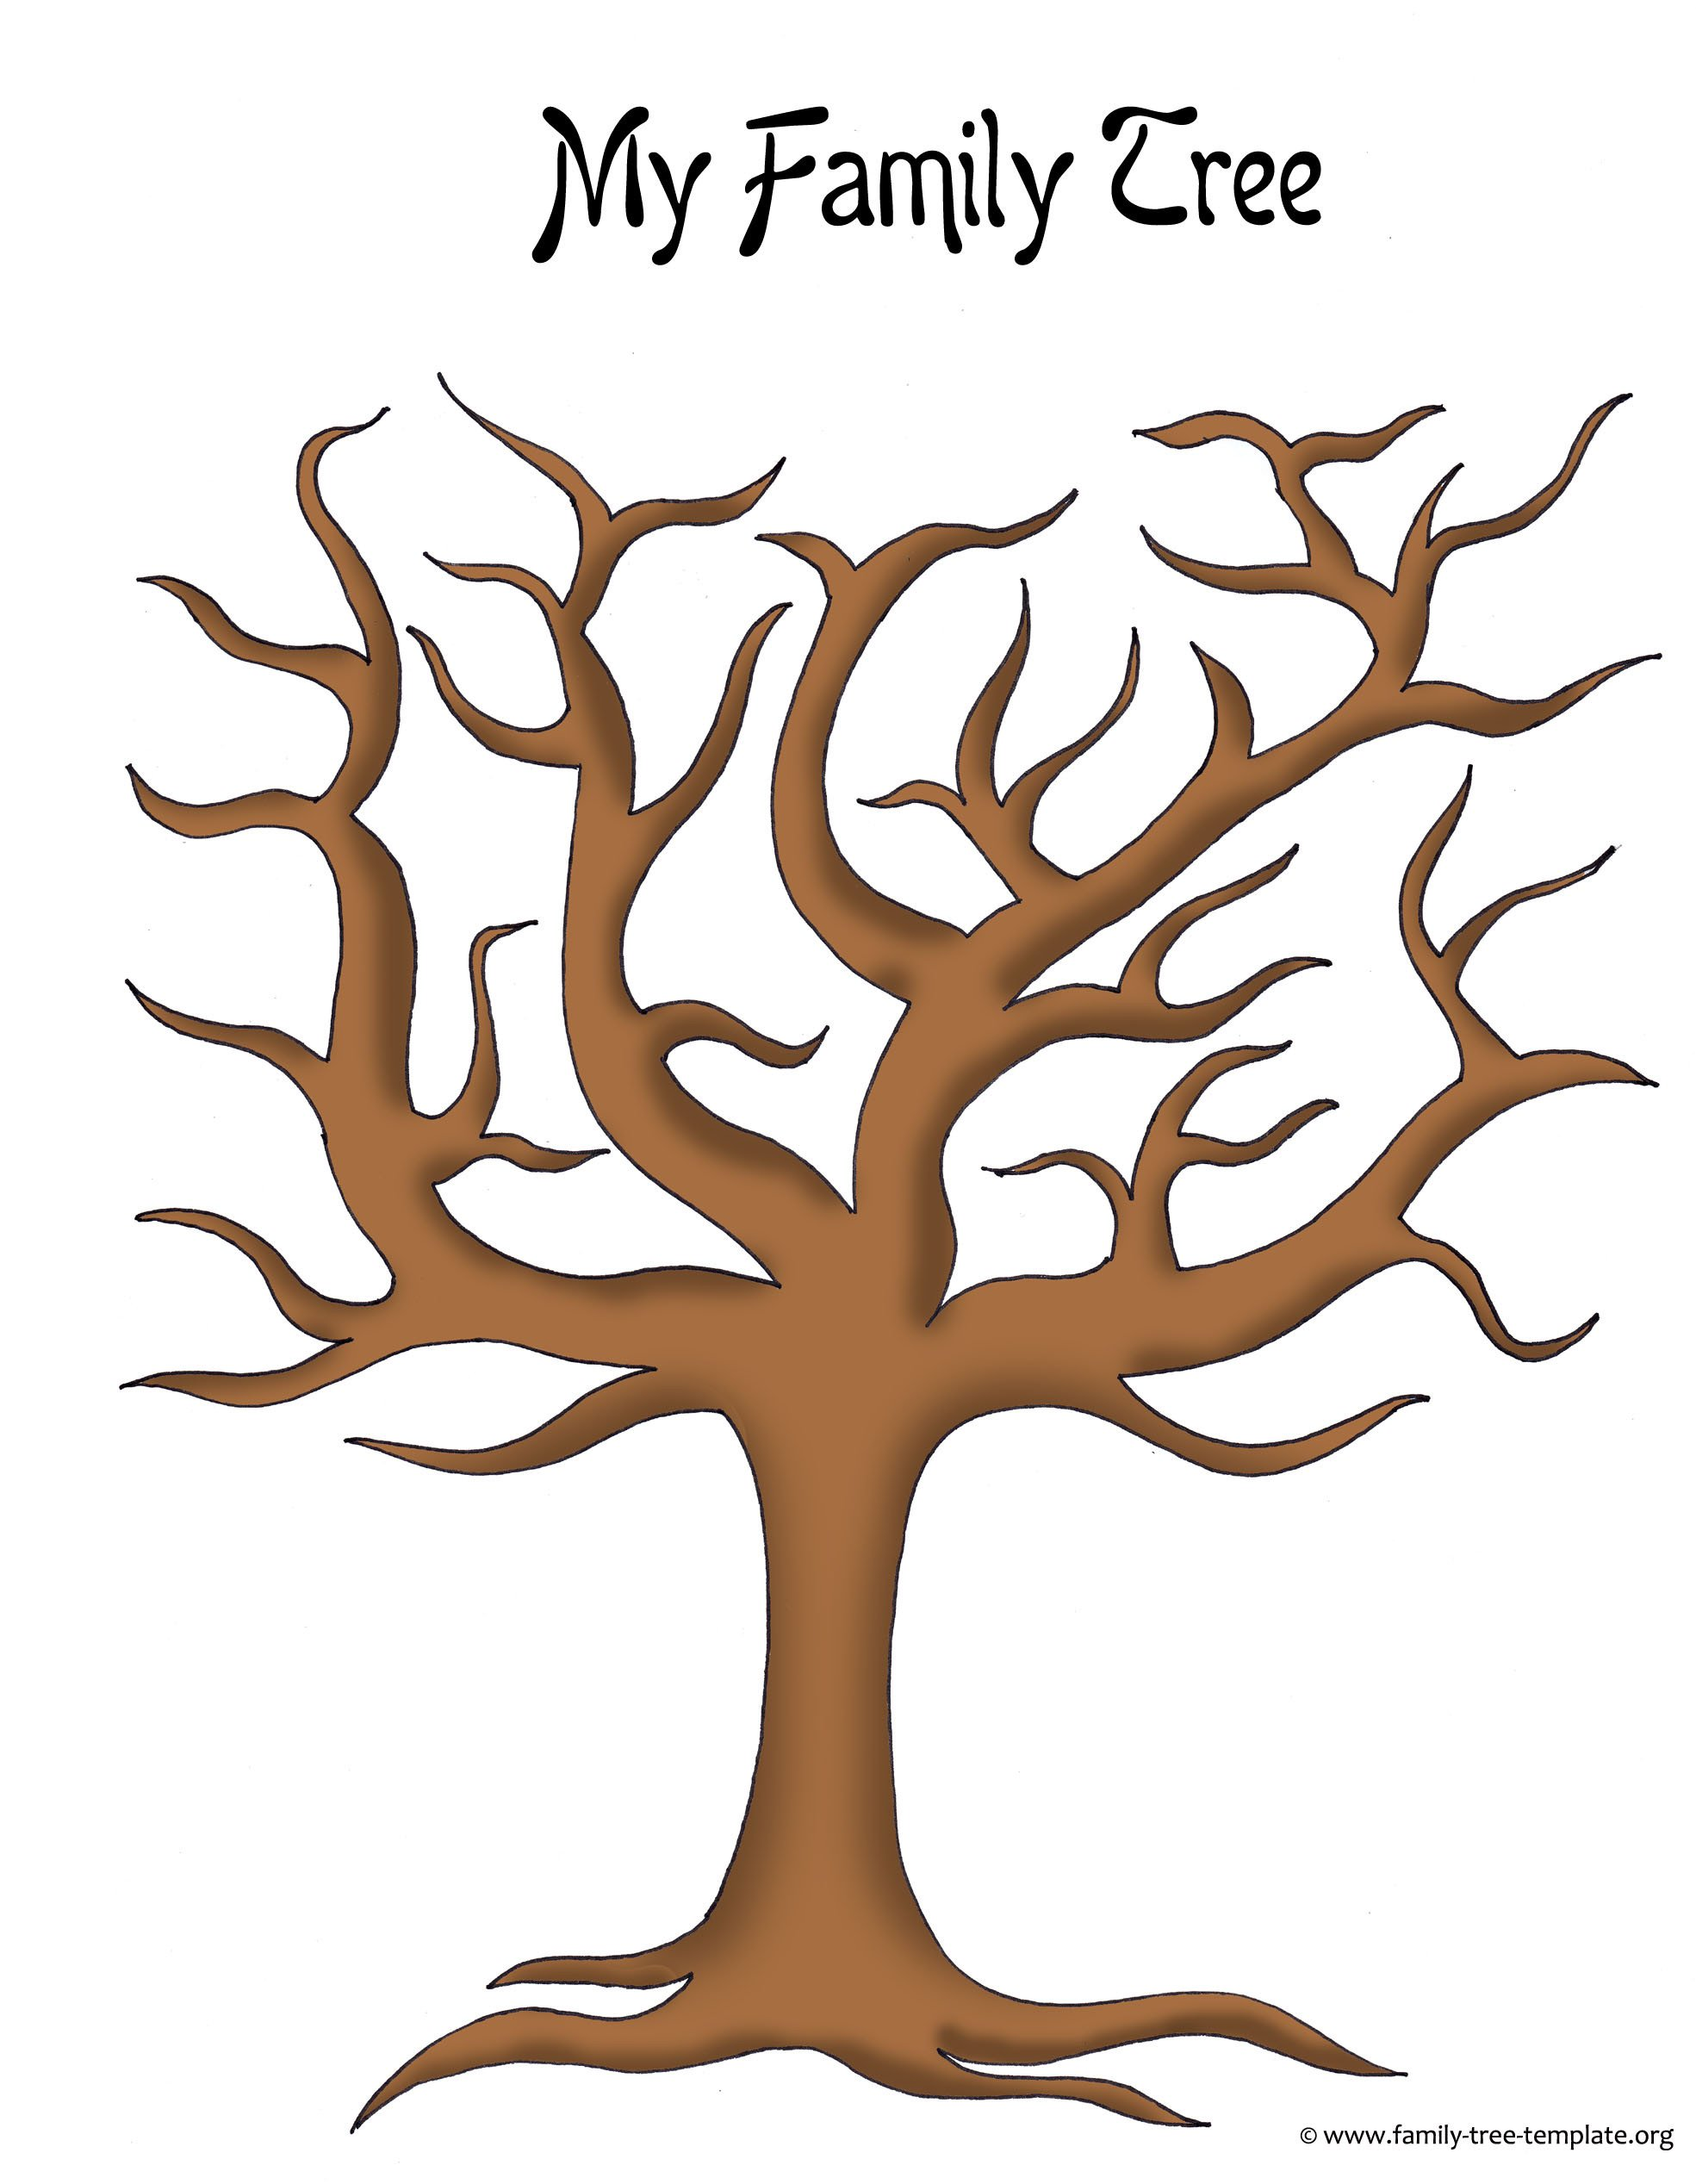 Family Tree with Pictures Template Make A Family Tree Easily with these Free Ancestry Charts